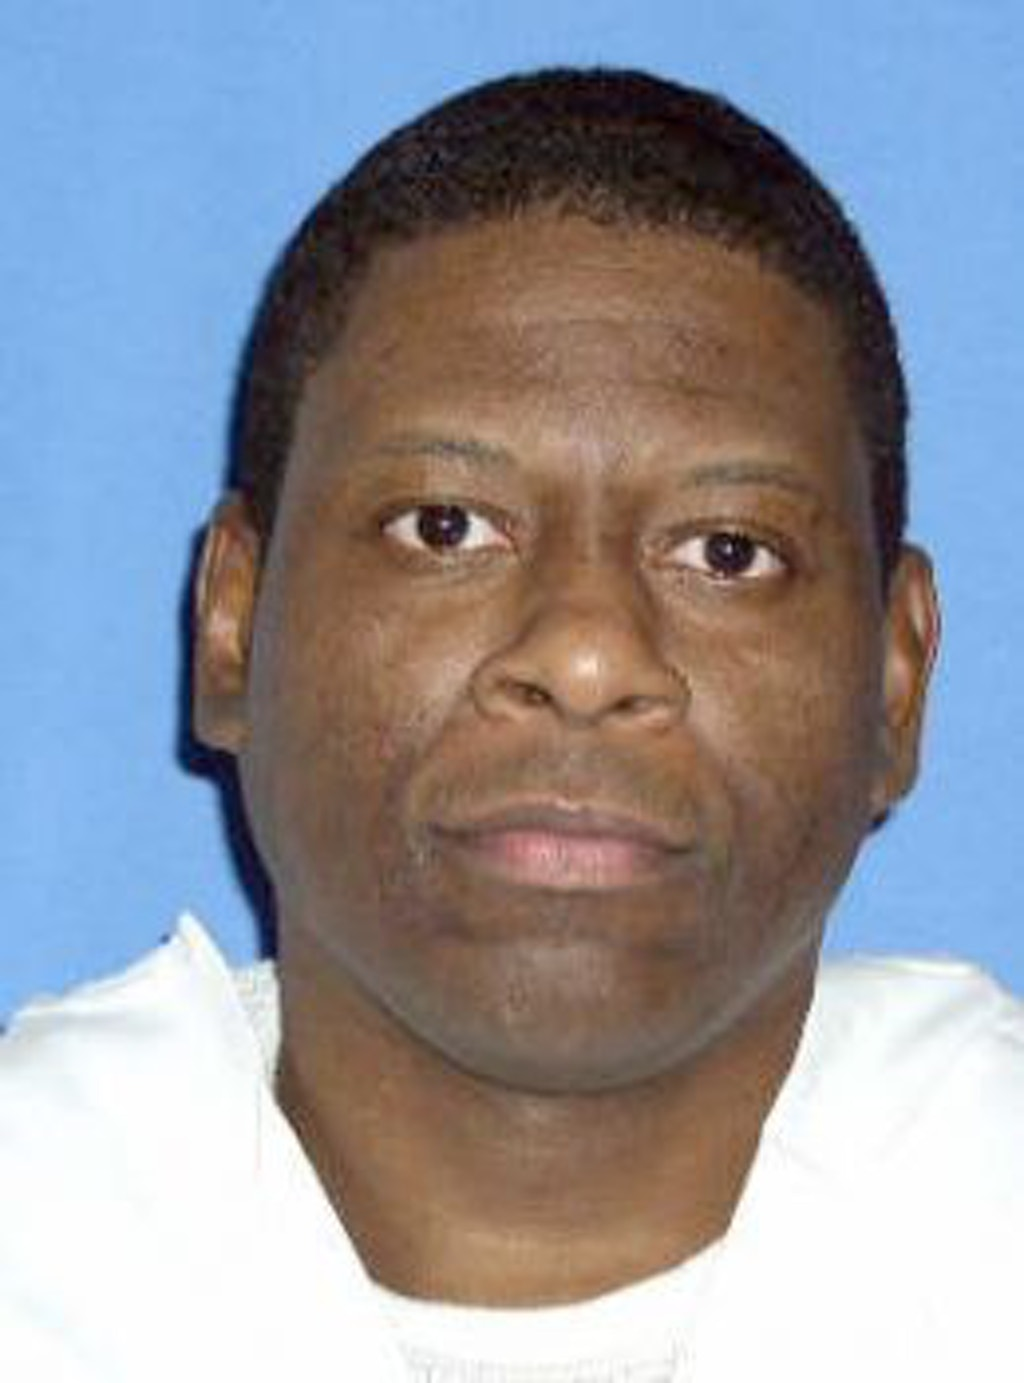 Supporters Rally For New Trial For Rodney Reed Sentenced To Death By All White Jury In Jim Crow Trial In Texas Death Penalty Information Center